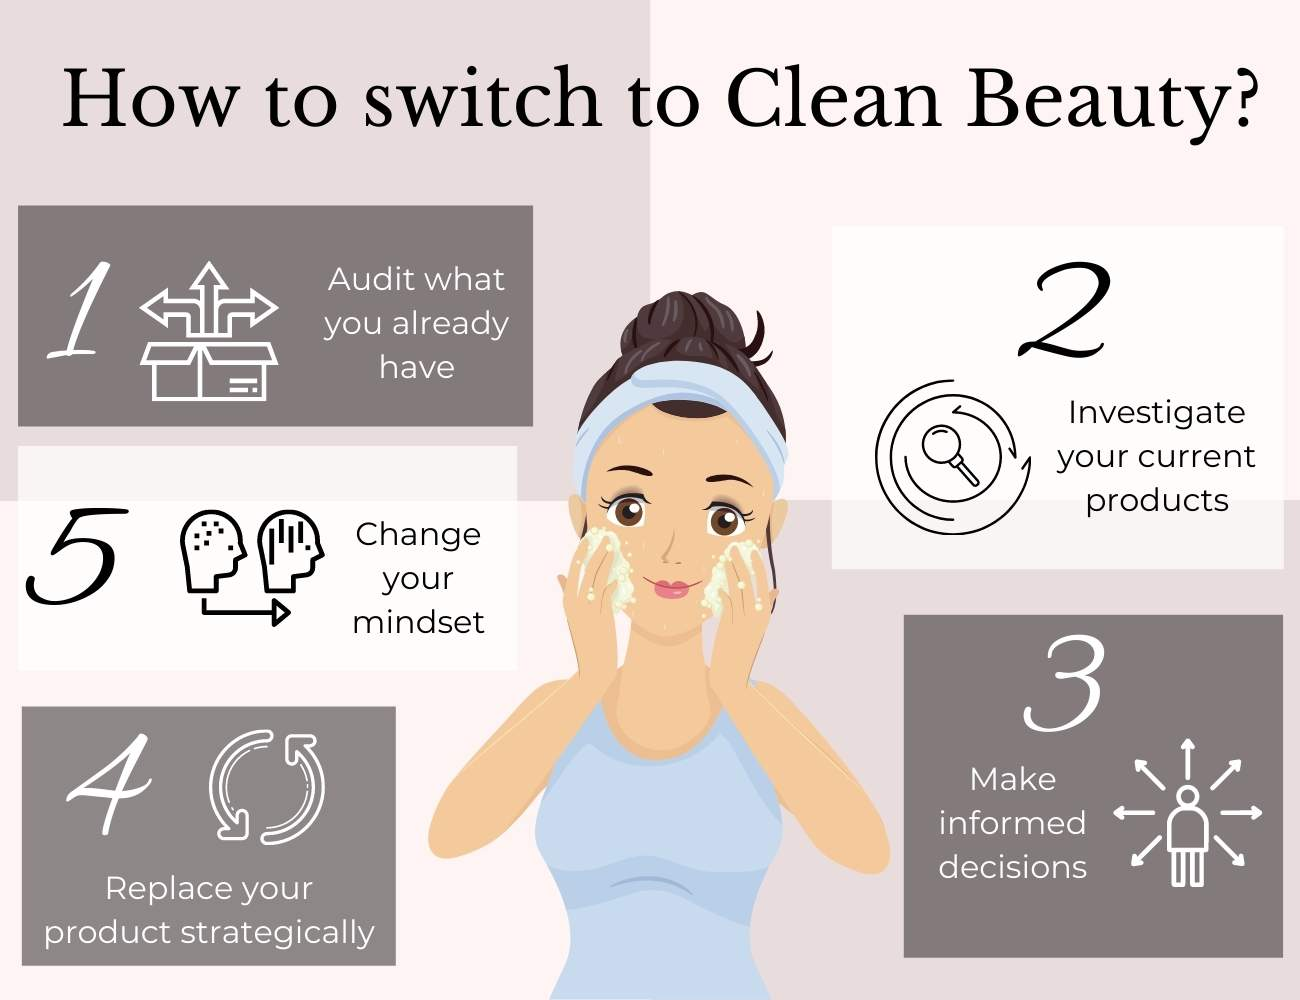 This is an image that showcases 5 steps that help you switch to clean beauty